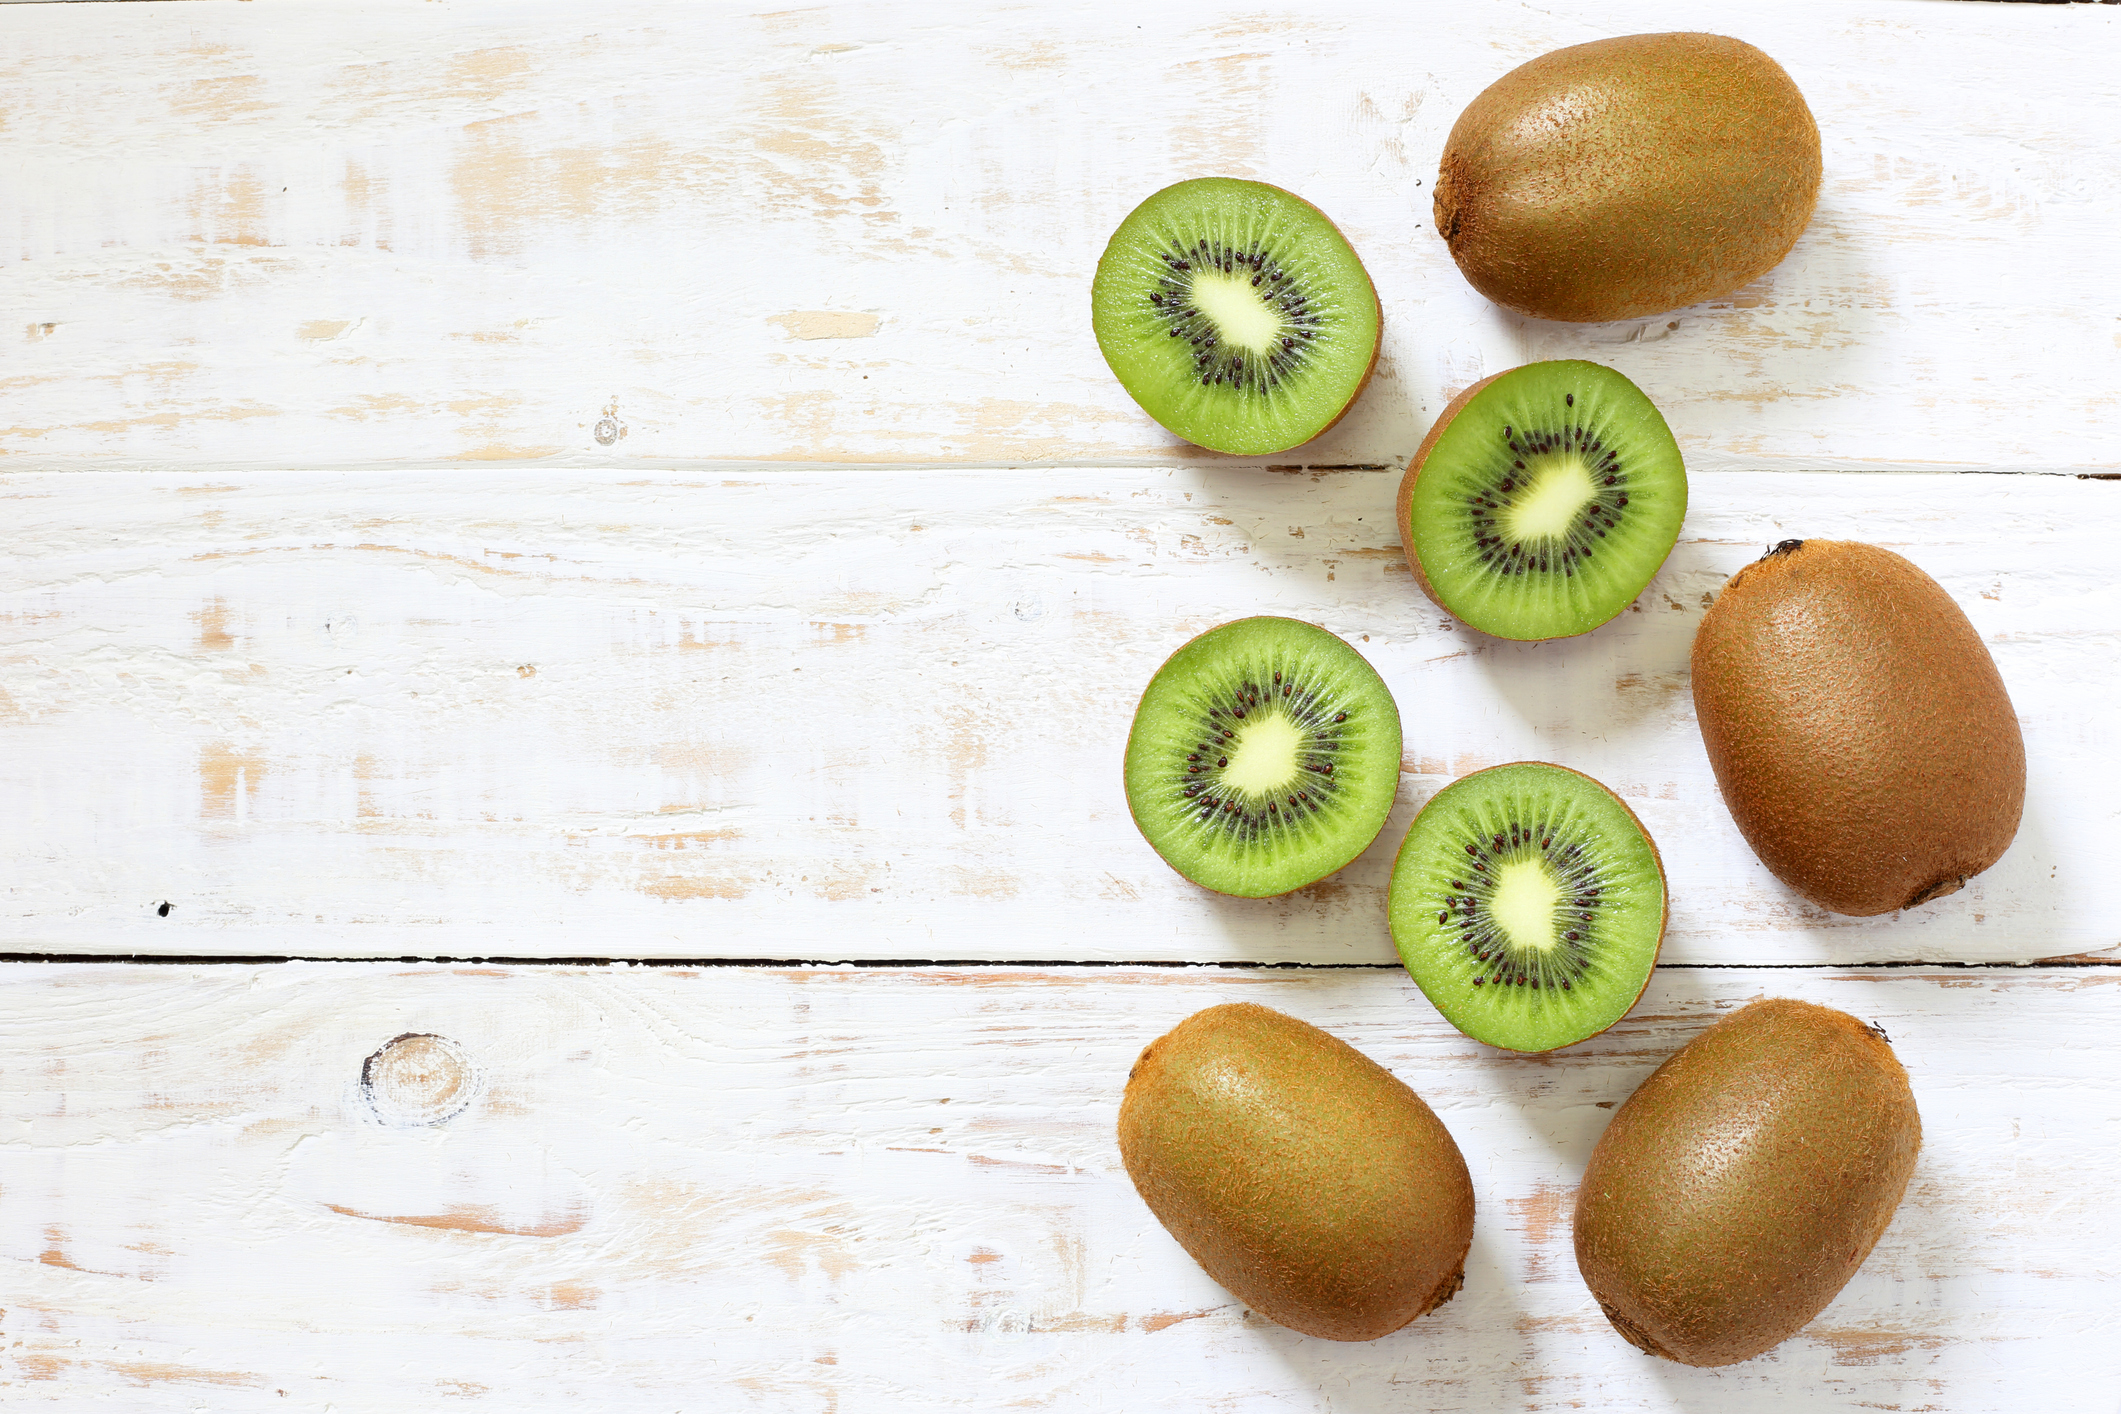 Eat These Delicious Fruits for Beautiful, Healthy Skin